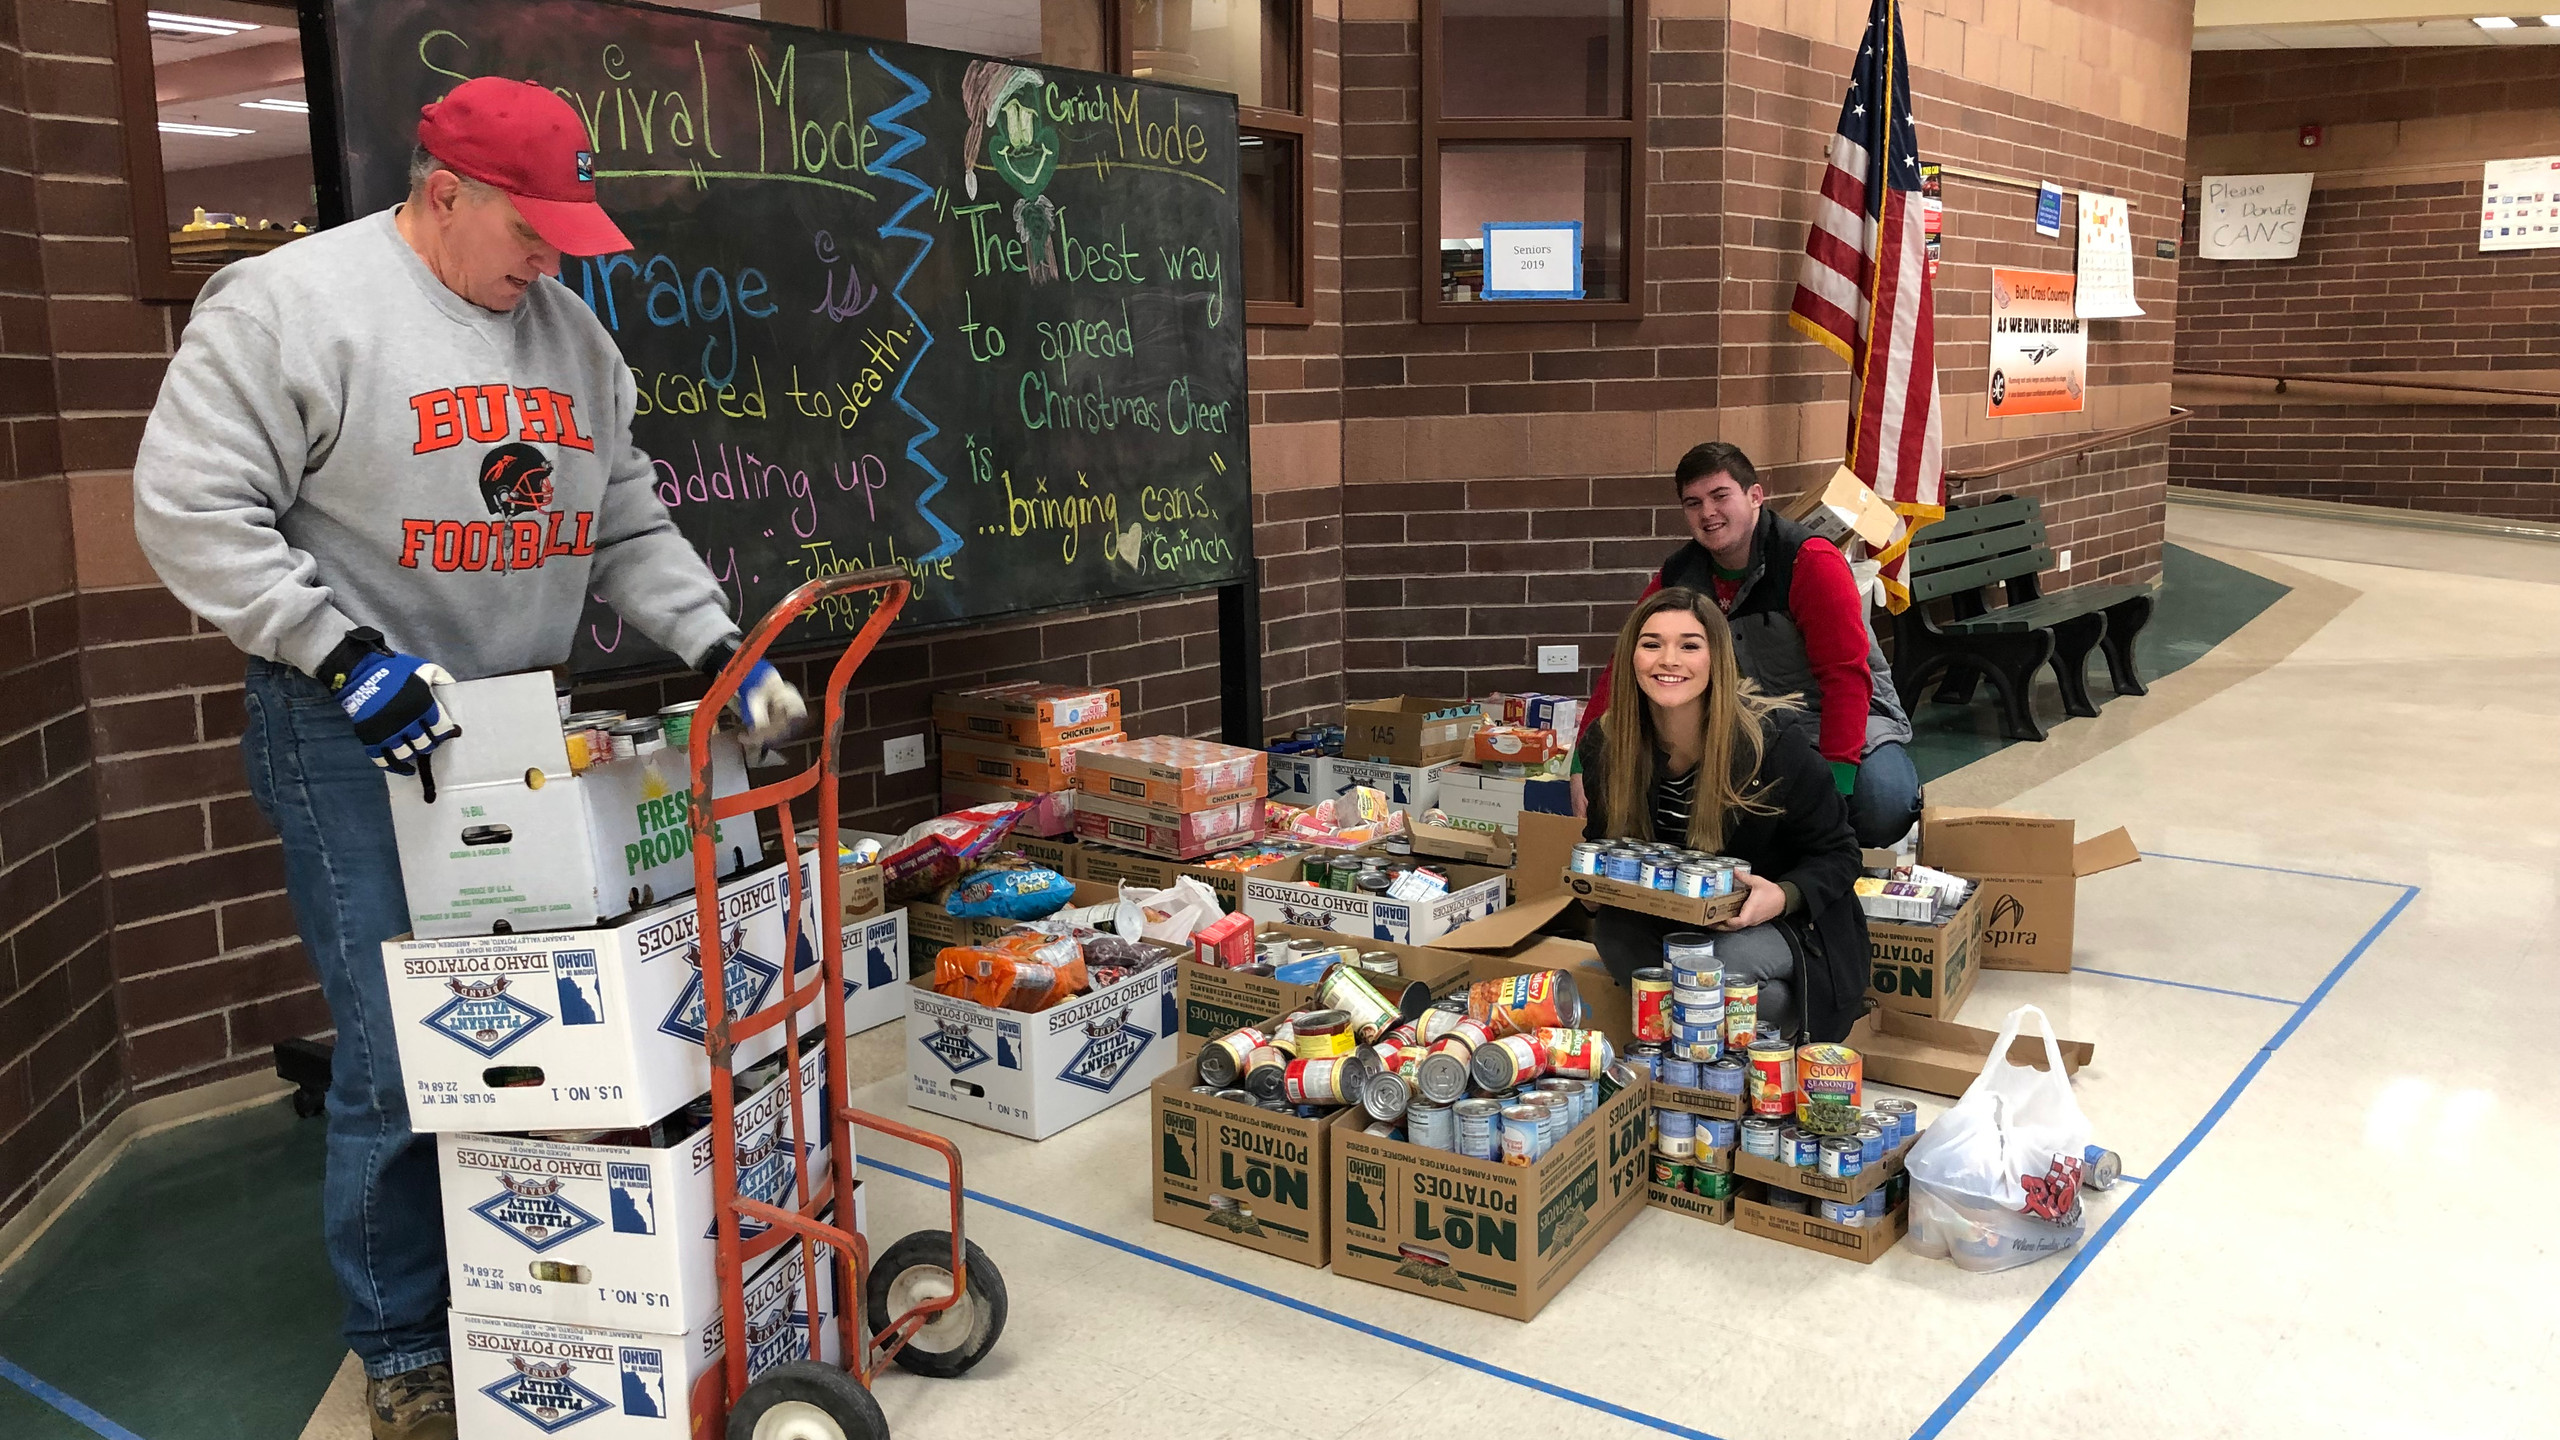 Students are helping load the cans from the food drive to be taken to places that will help those in need.